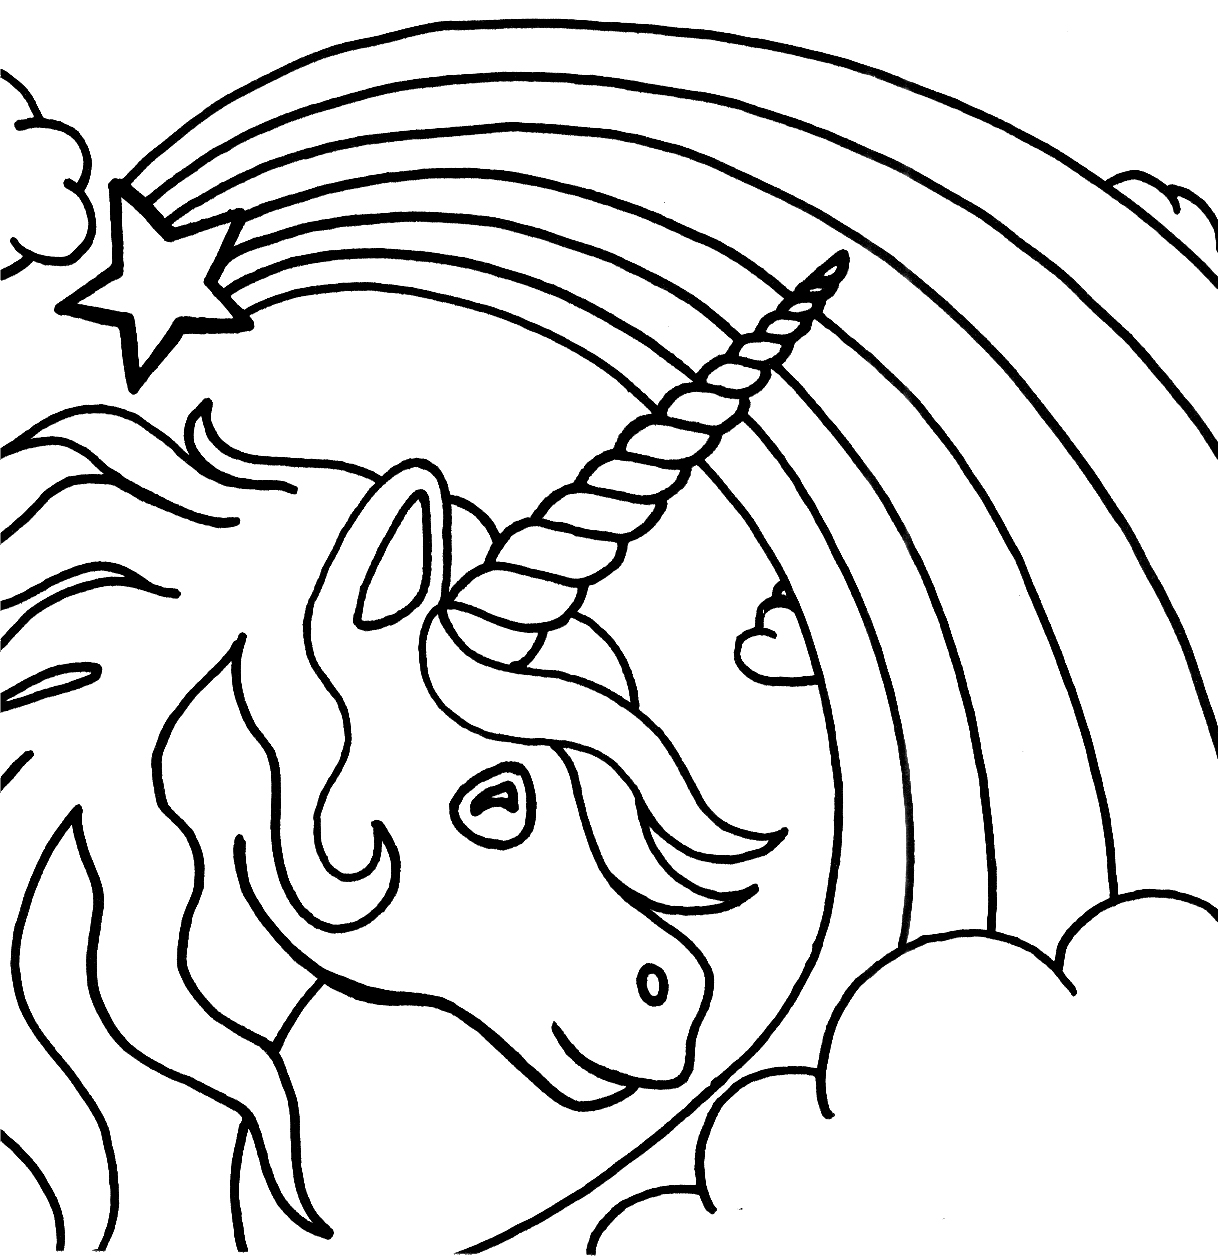 kids coloring pages photo - 1